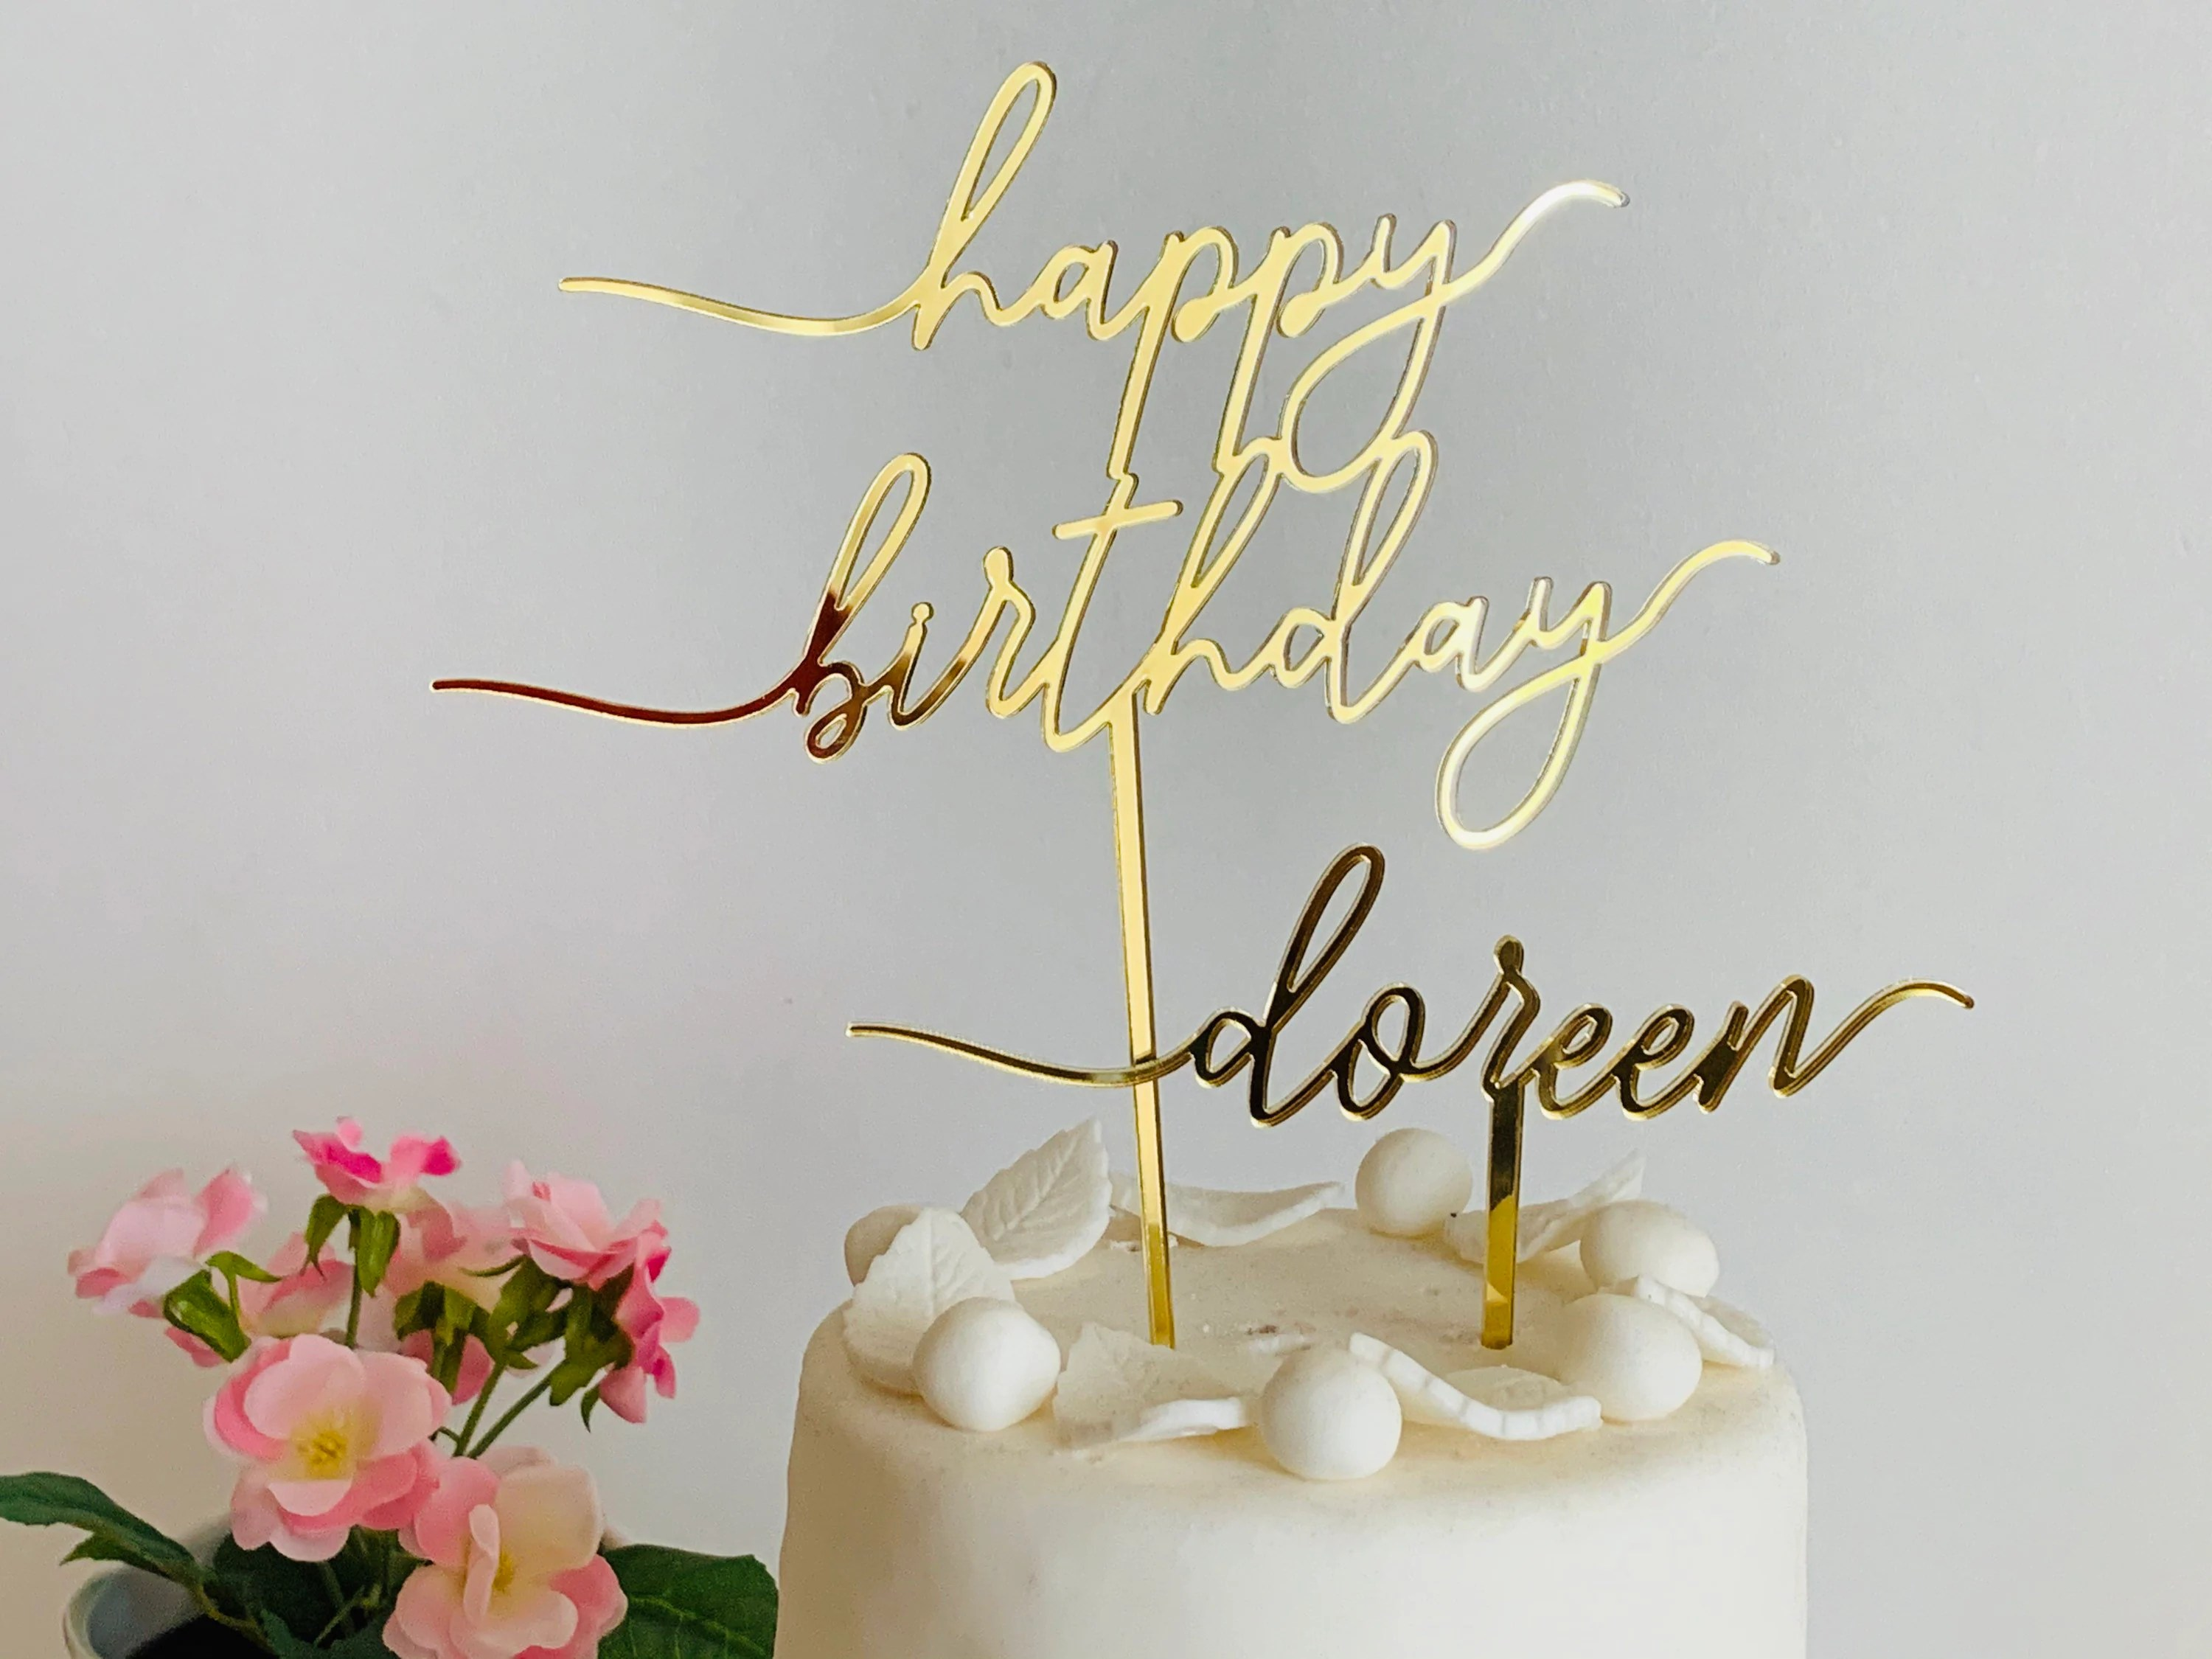 Personalized Name Cake Topper Happy Birthday Sign Custom Name Birthday Party Table Decorations Customized Mirrored Topper Cake Centerpiece